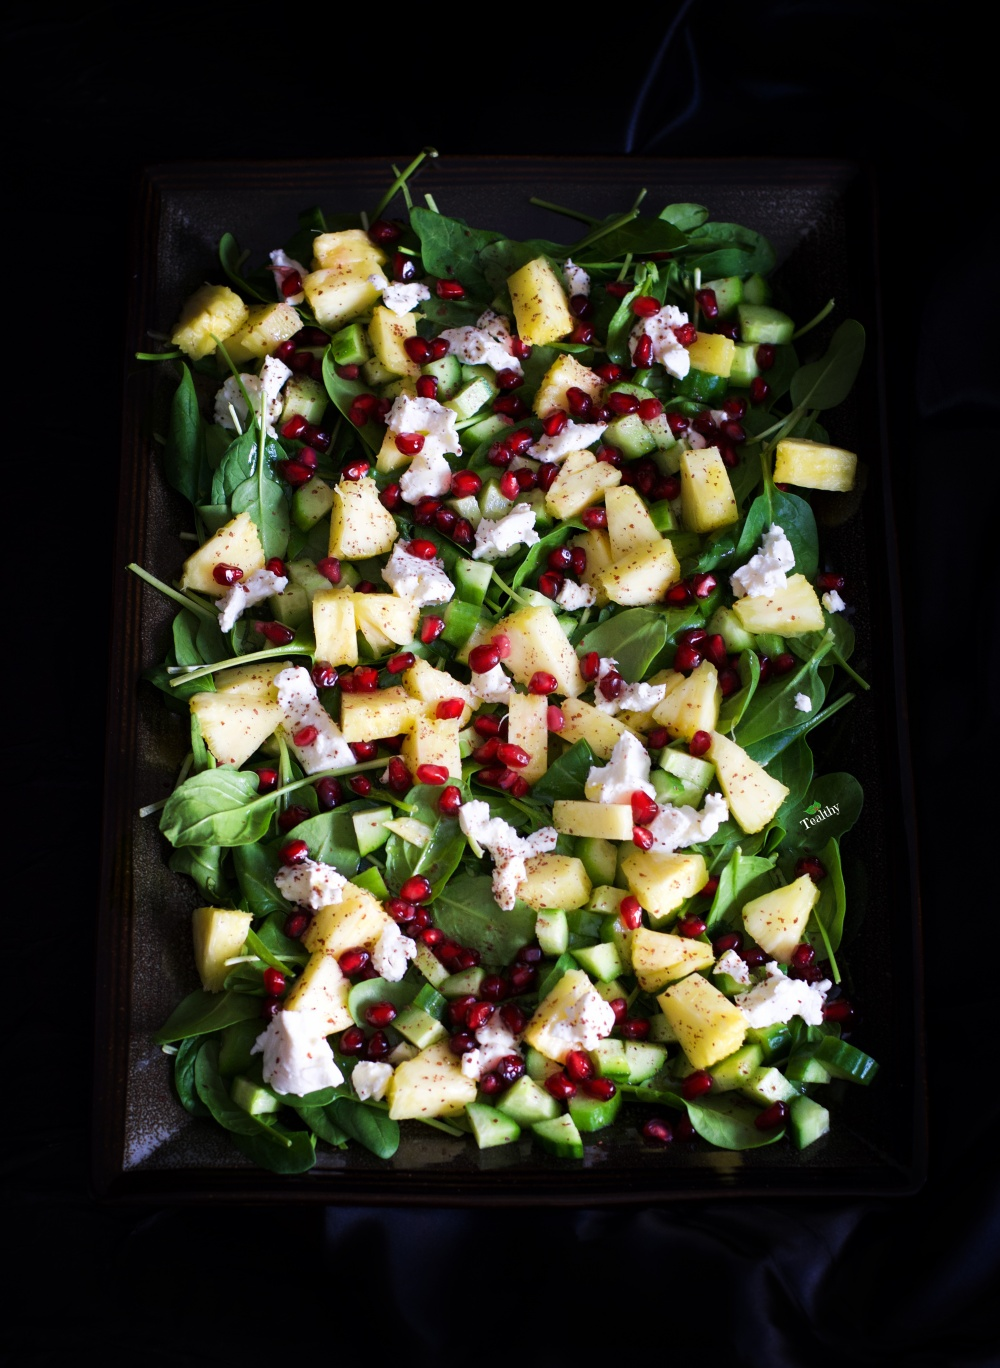 Fruit and veggie salad with watermark